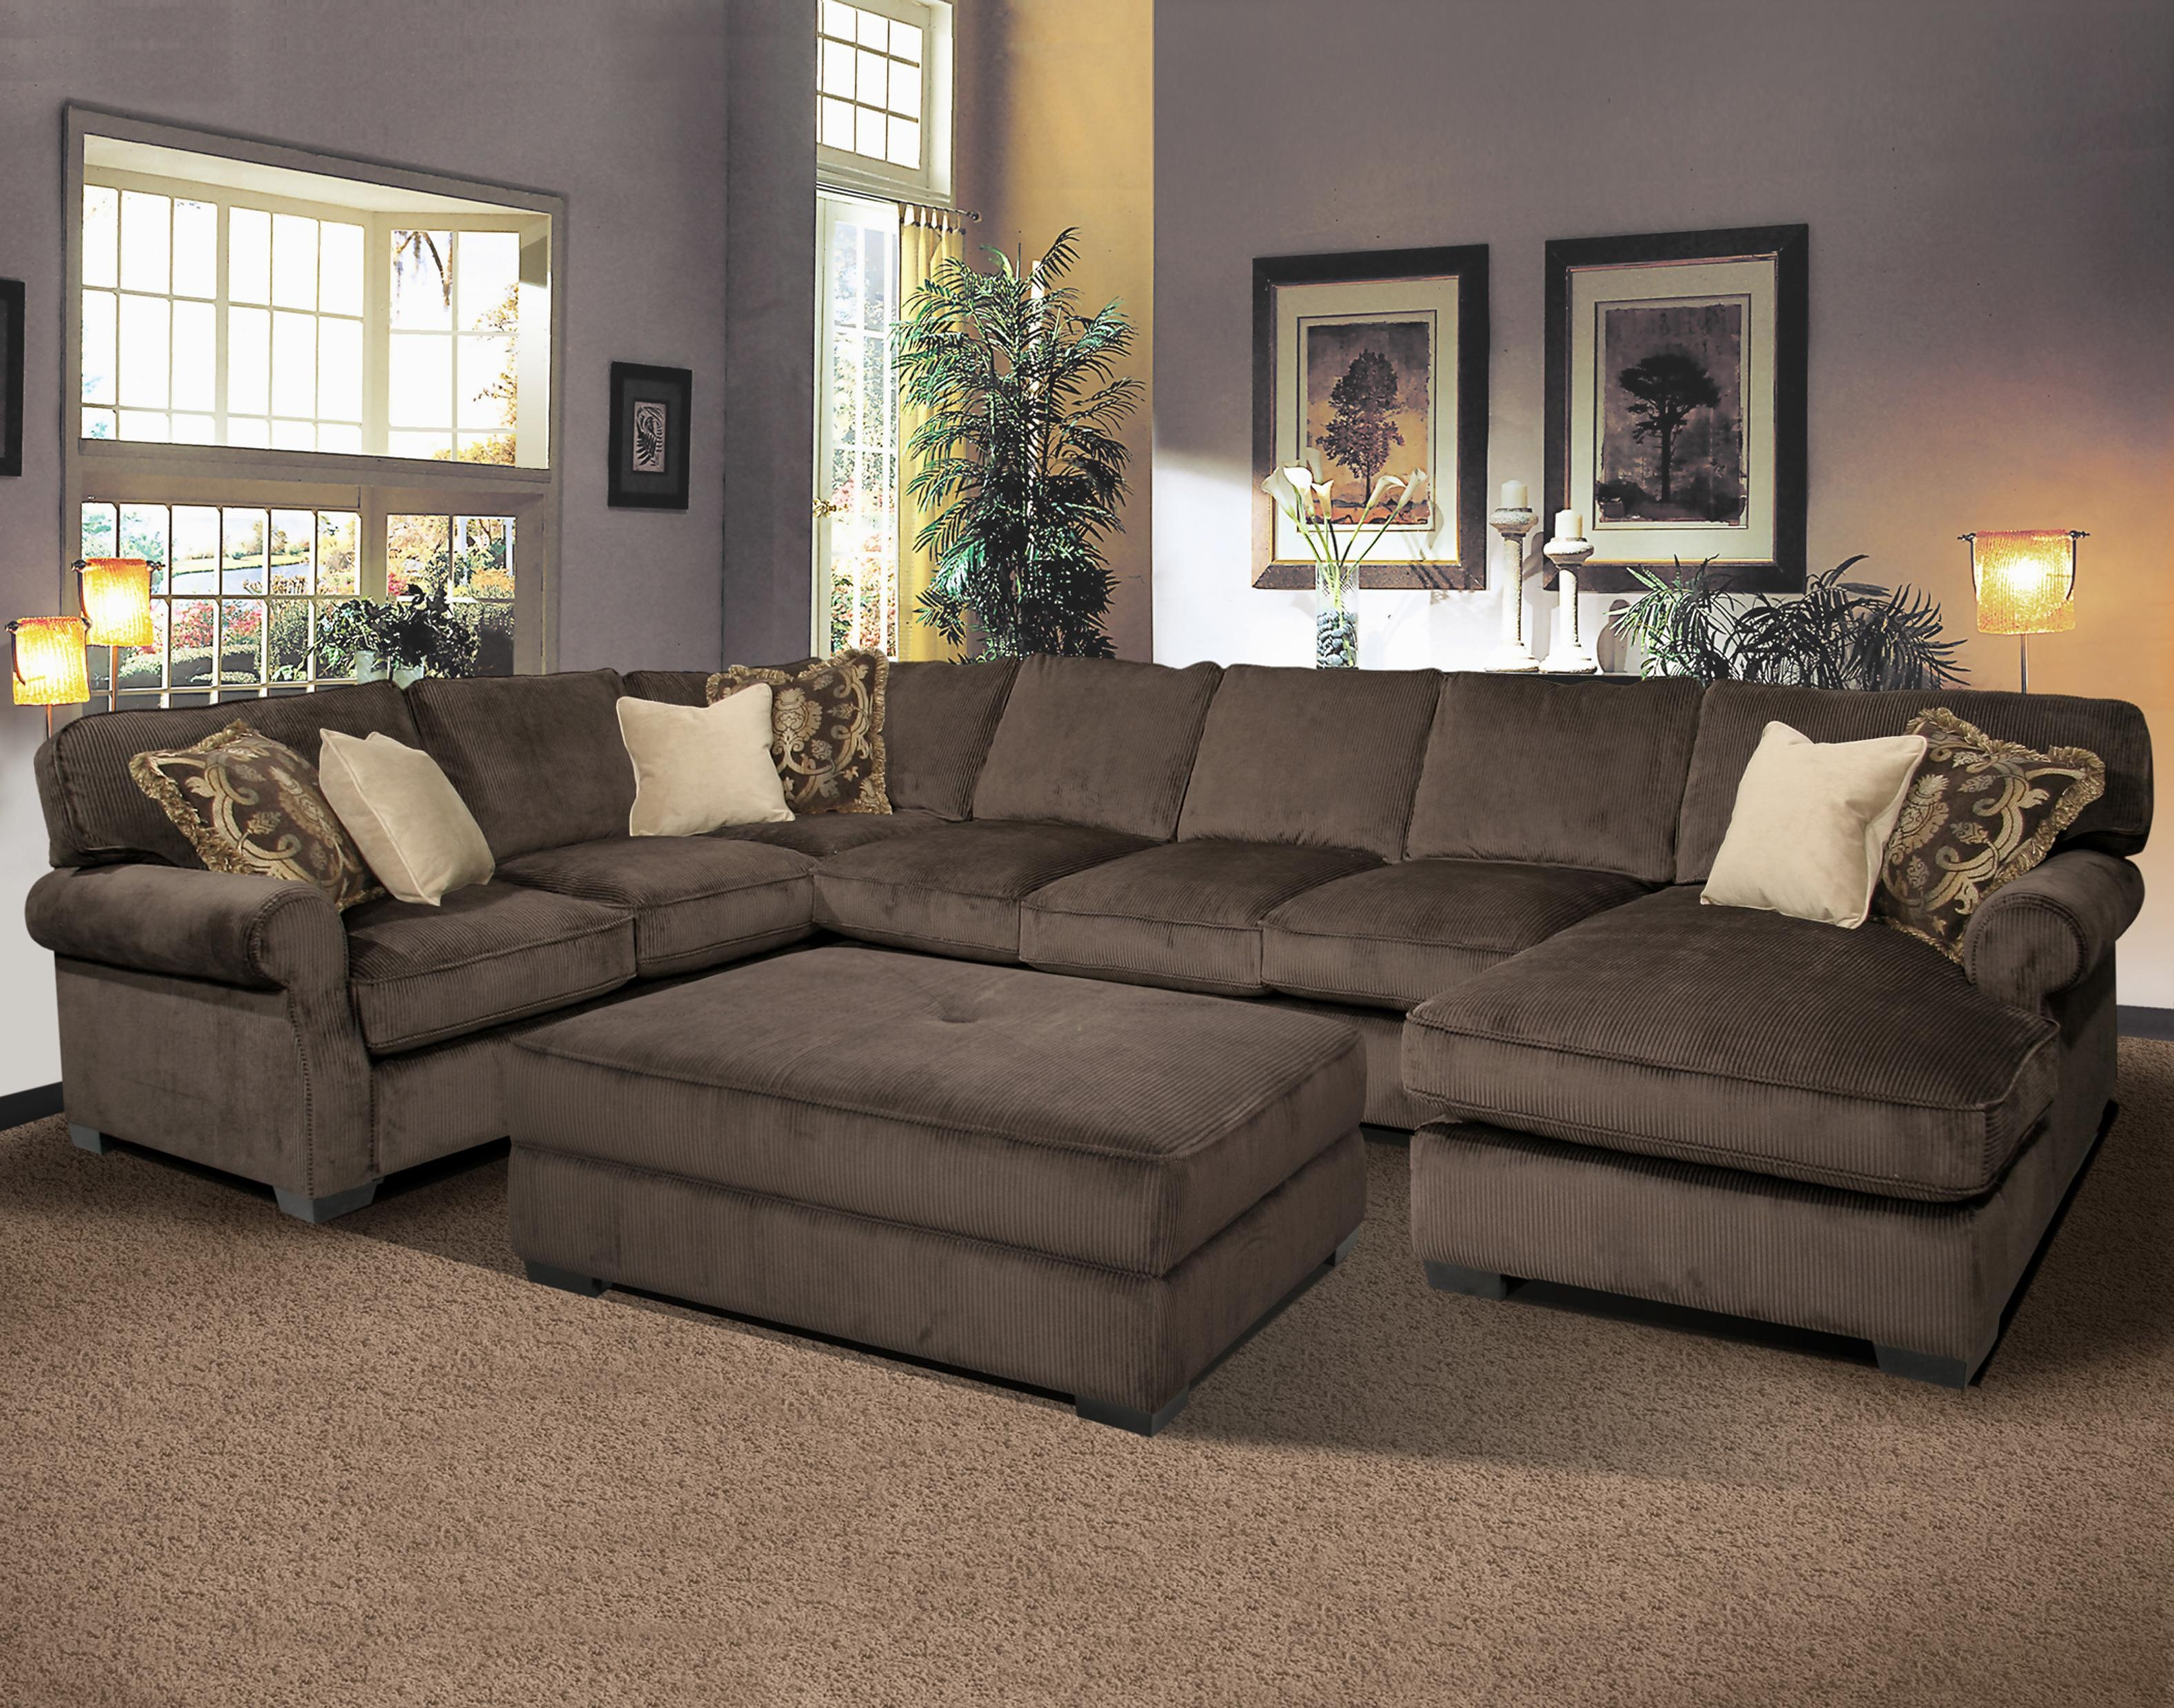 Comfortable Sectional Sofa Most Comfortable Sectional Sofa